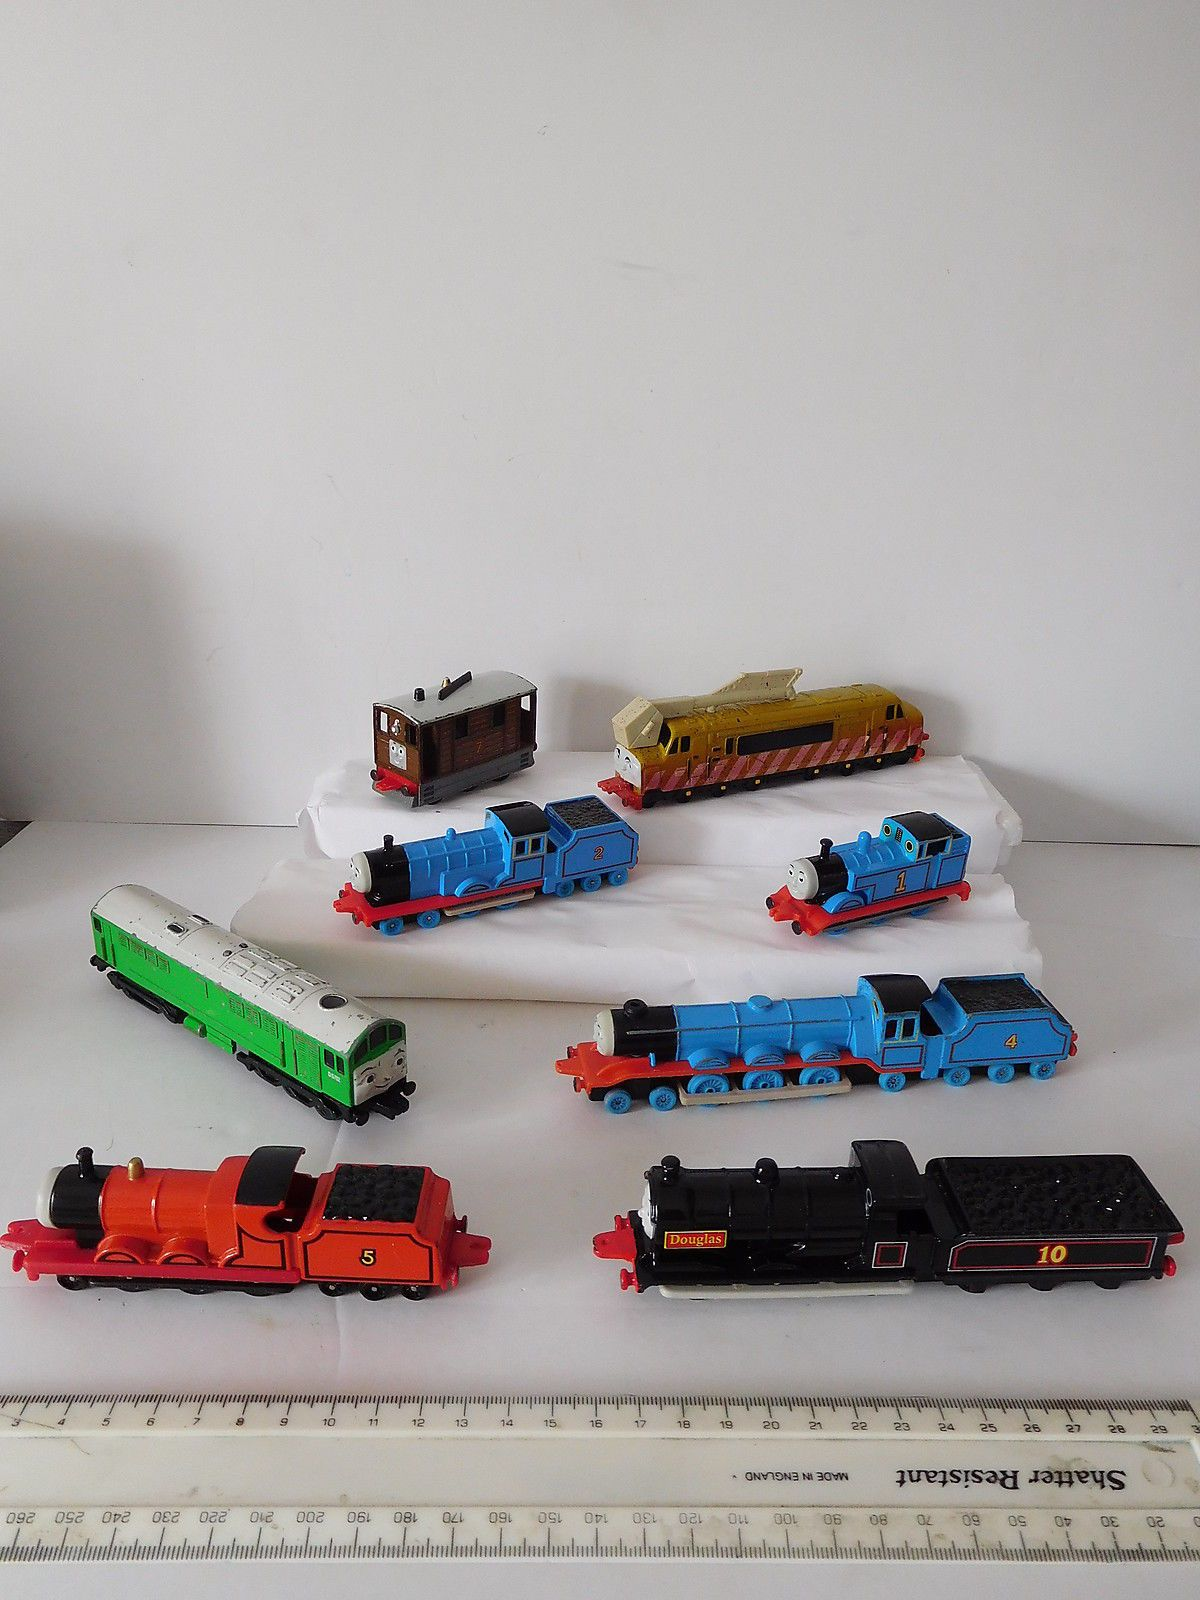 thomas the tank train collection by ertl view more on the link job lot of thomas diecast ertl train engines view more on the